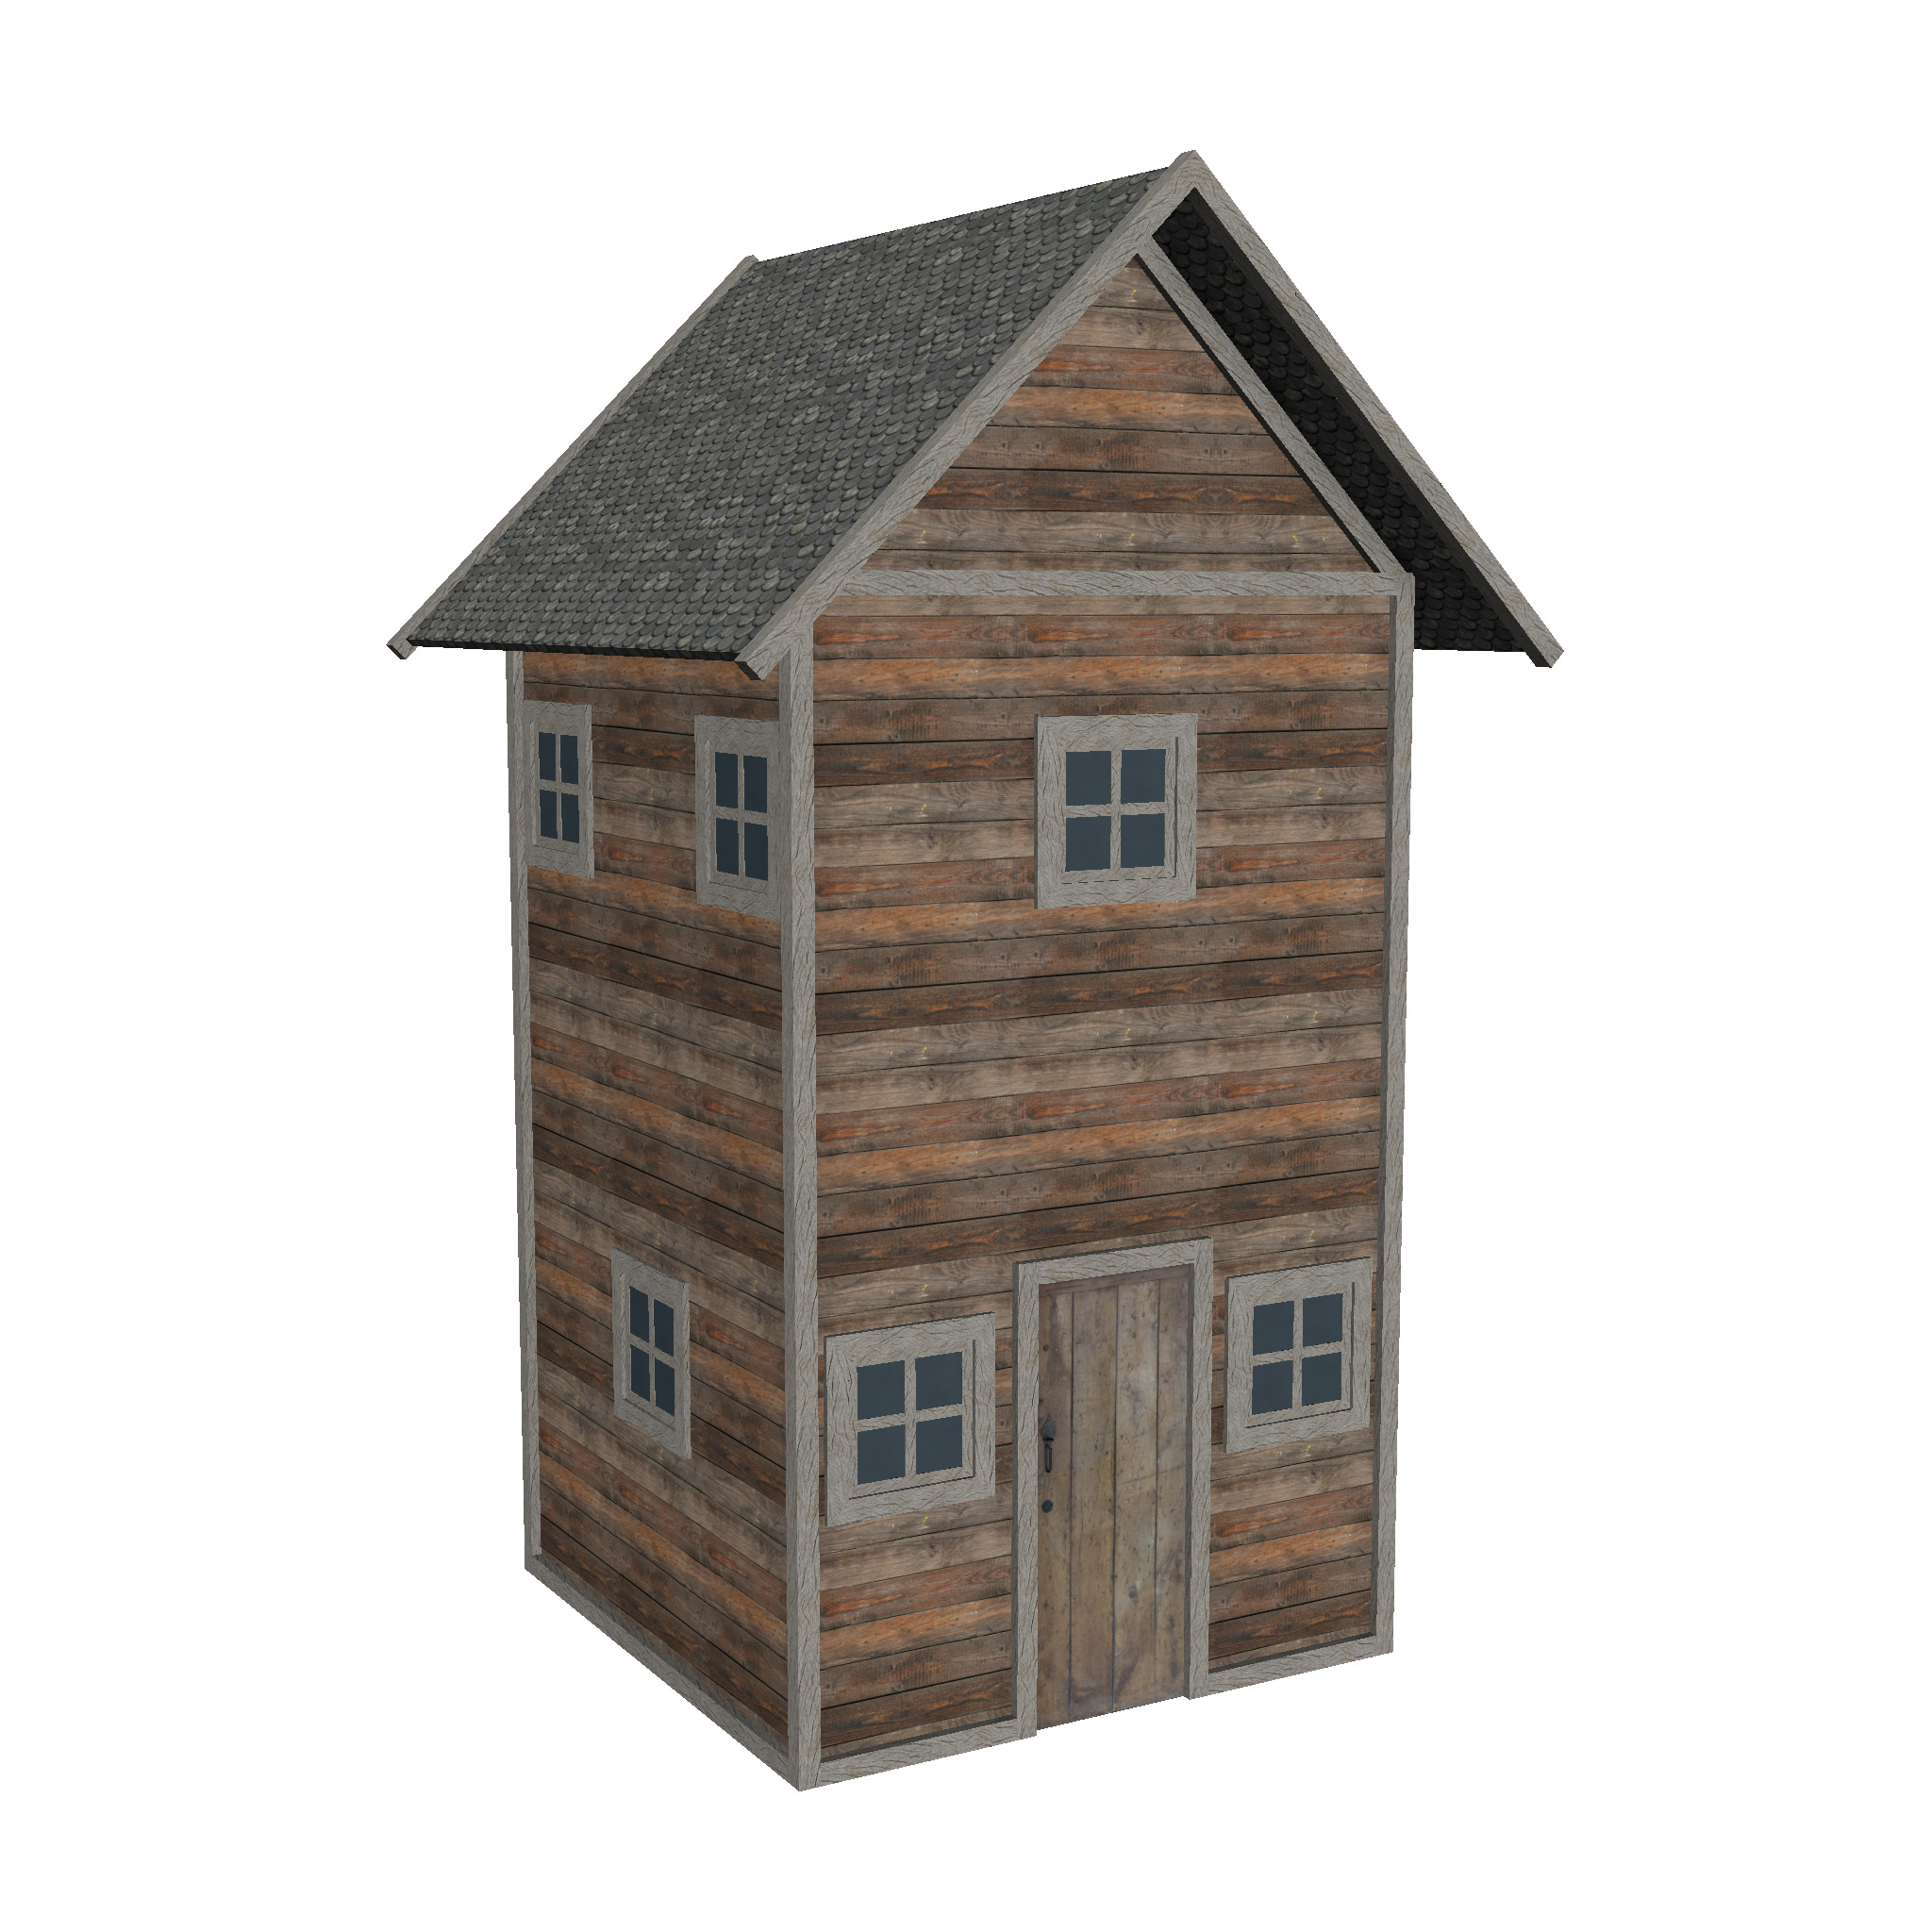 modular wood house set 3d model fbx ma mb 271443